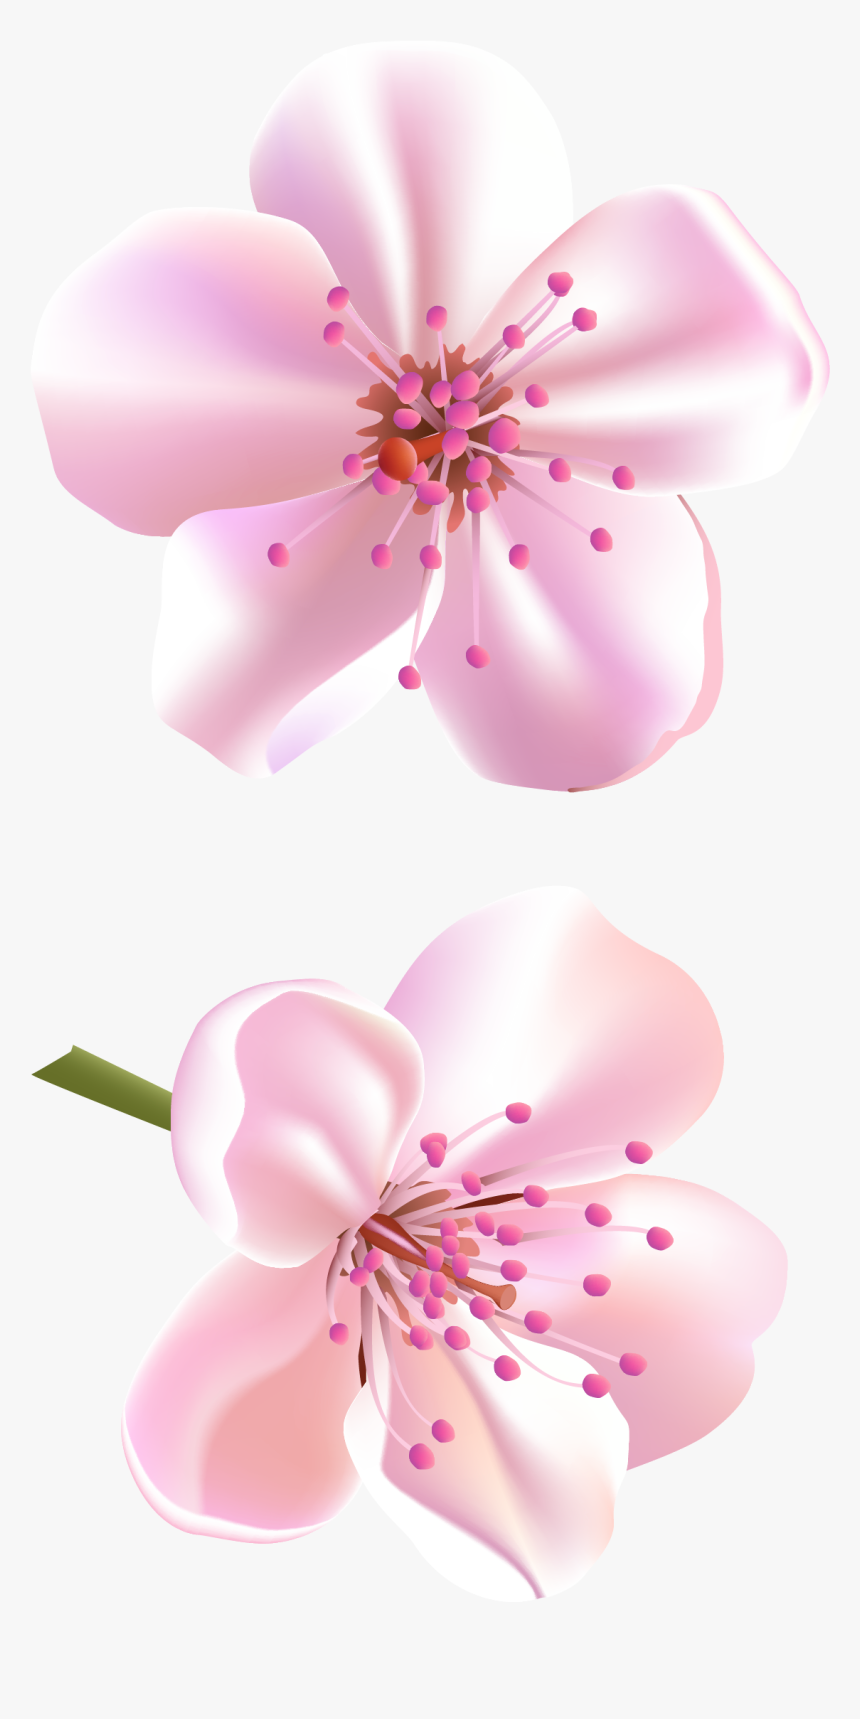 Flower Cherry Blossom Clipart, HD Png Download, Free Download